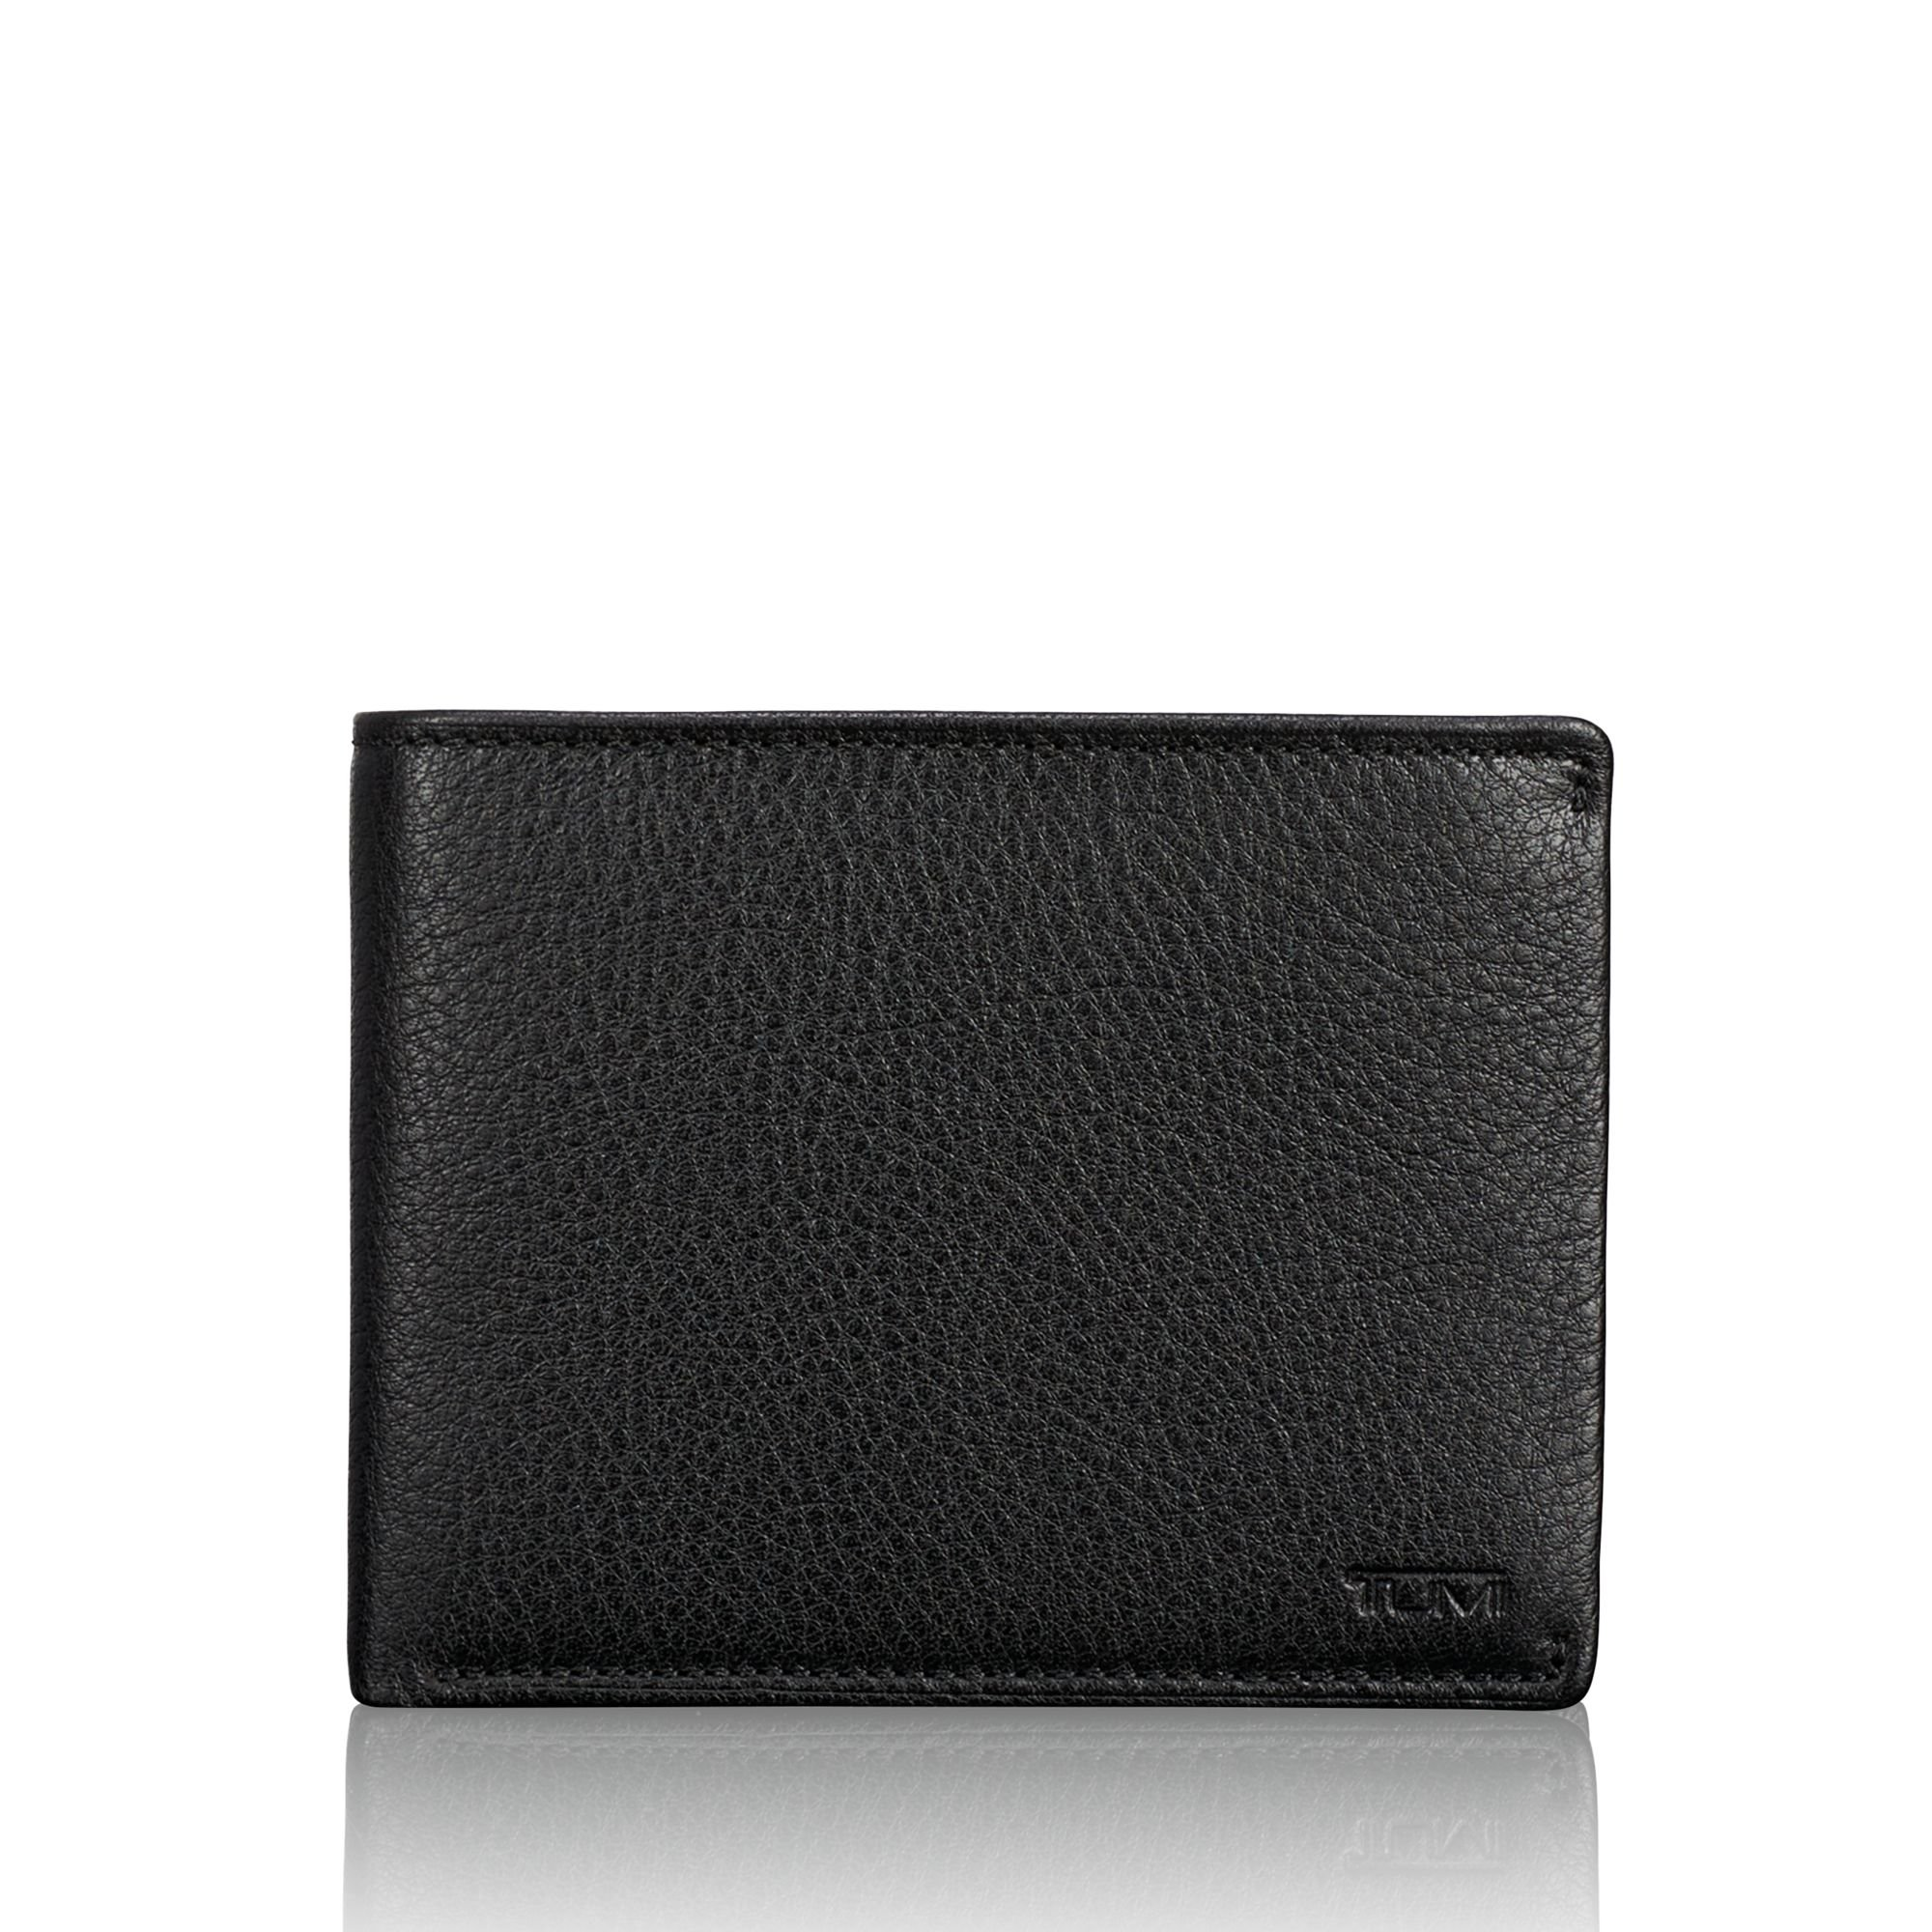 Tumi Mens Nassau Global Wallet with Coin Pocket Black Textured One Size by Tumi (Image #1)